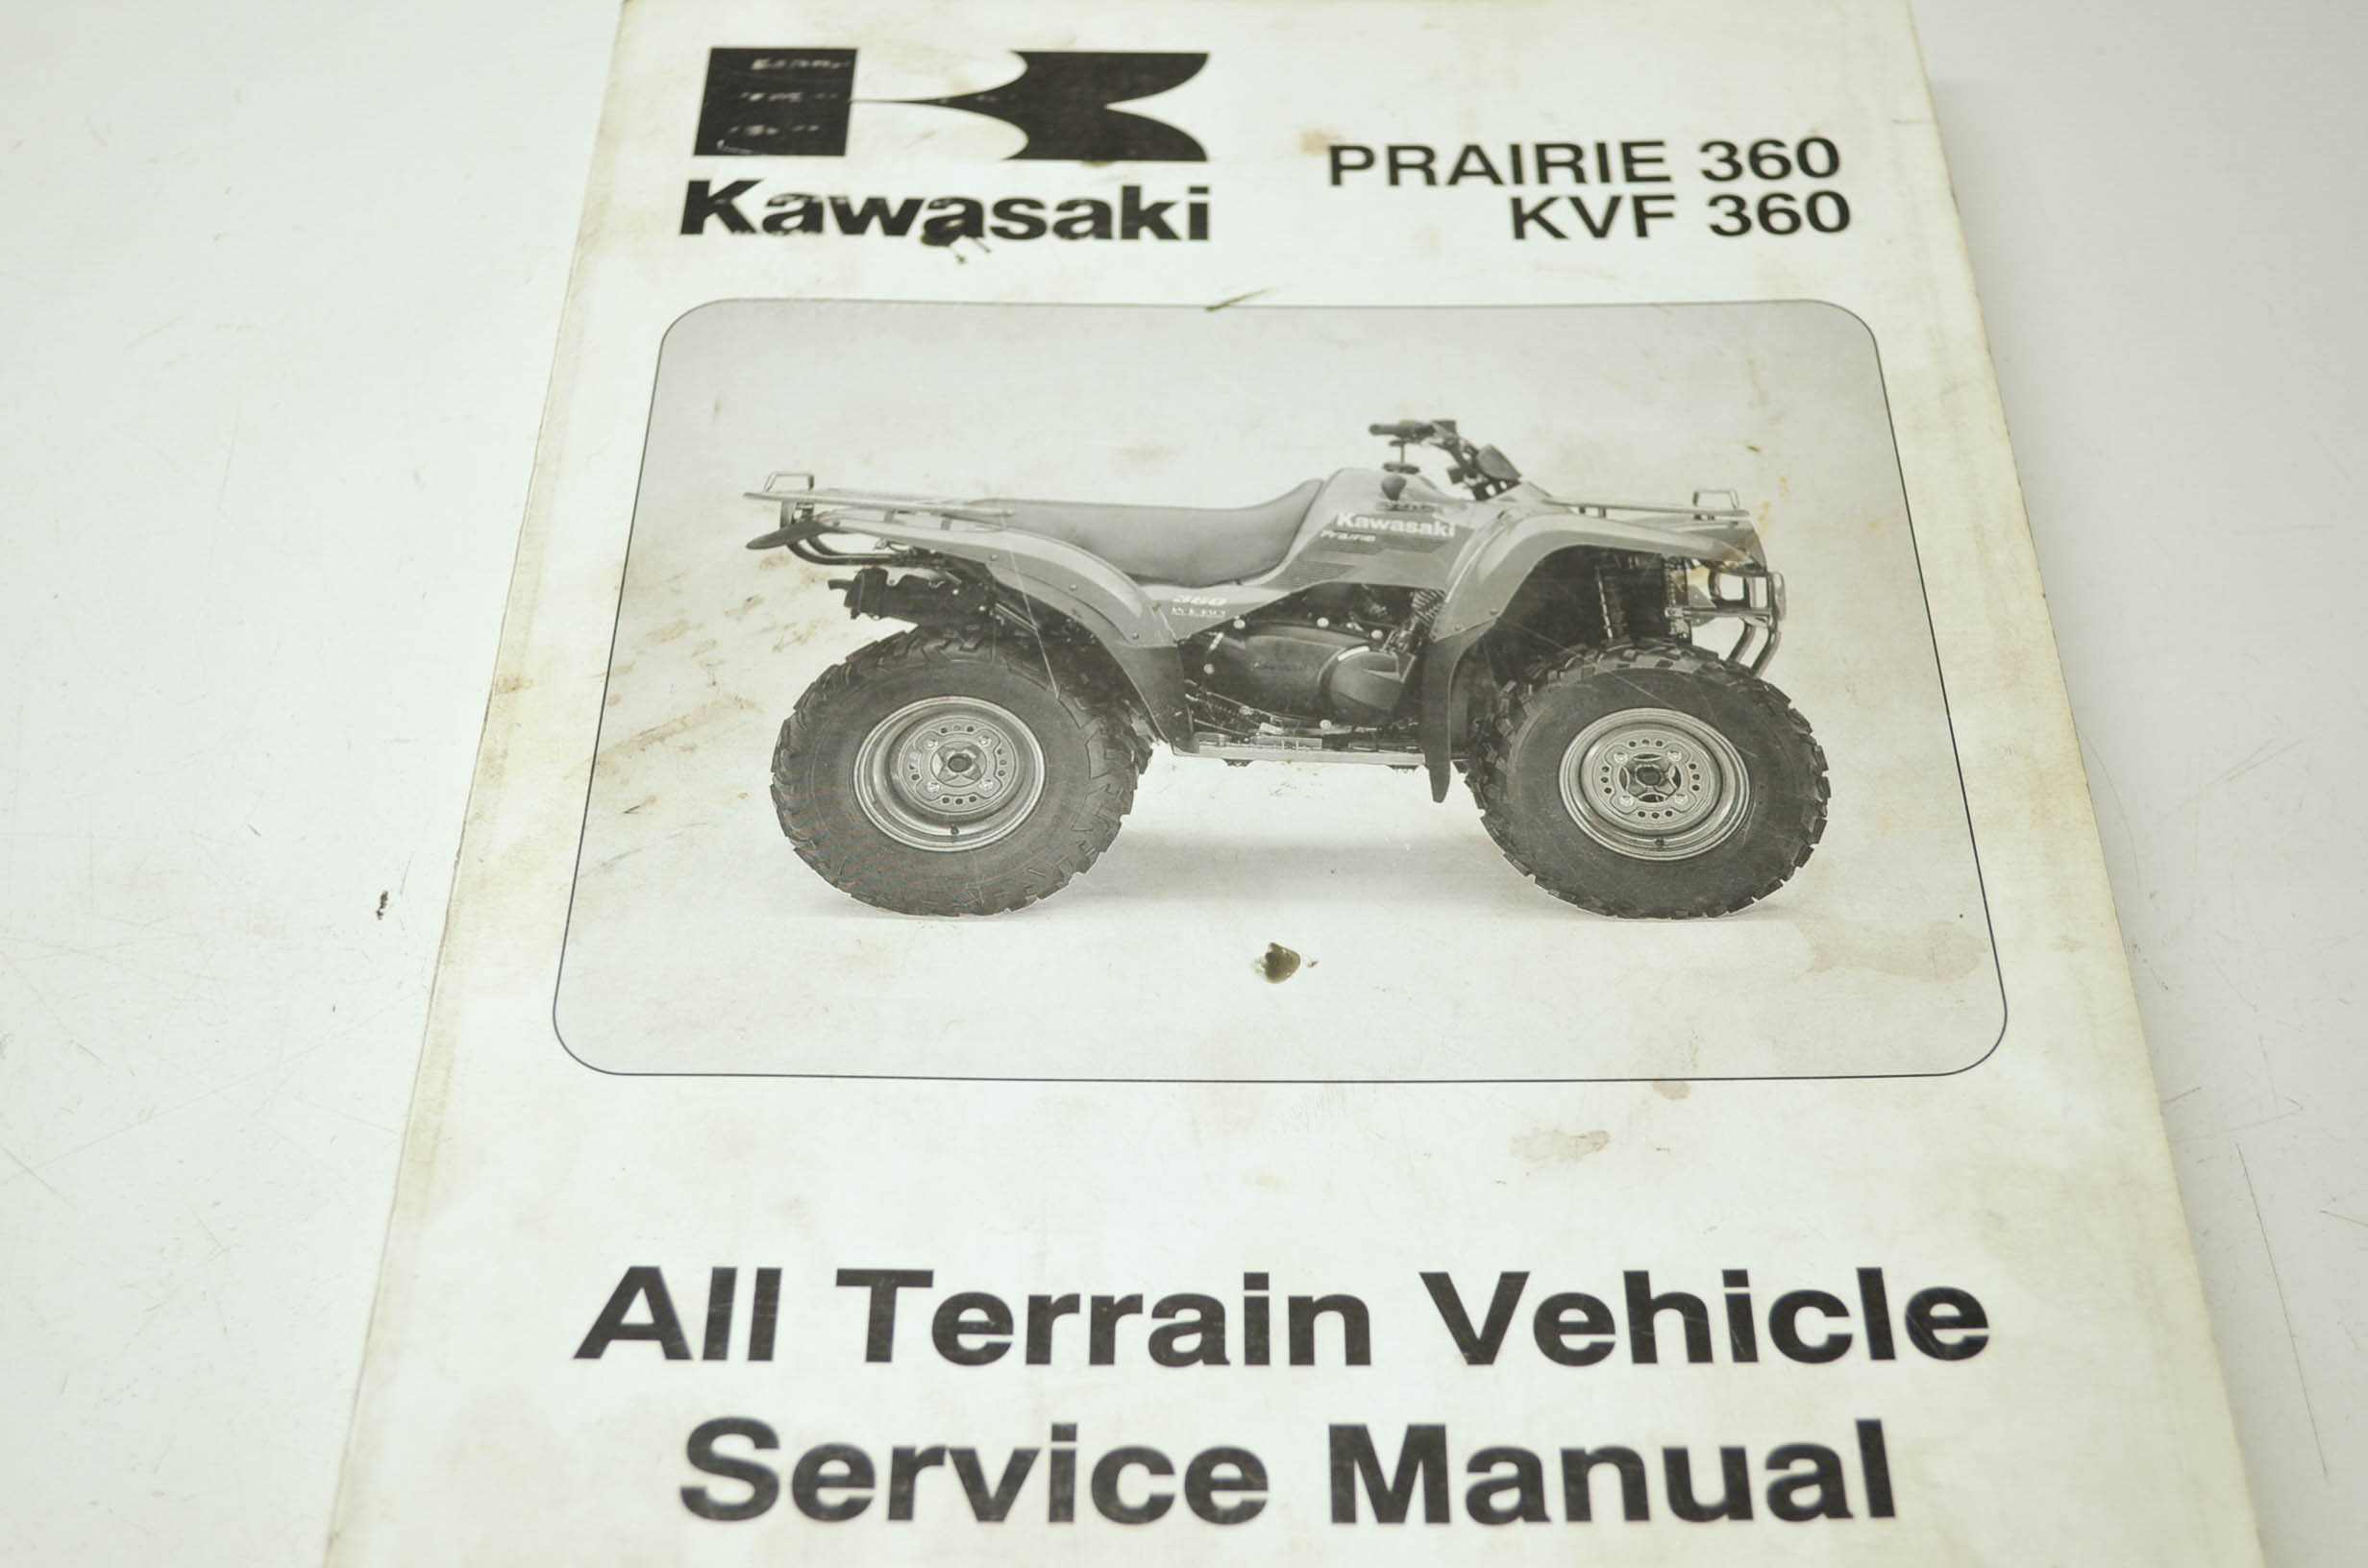 ... atv service manual oem Array - kawasaki 99924 1302 01 prairie 360 kvf  360 service manual qty 1 rh walmart